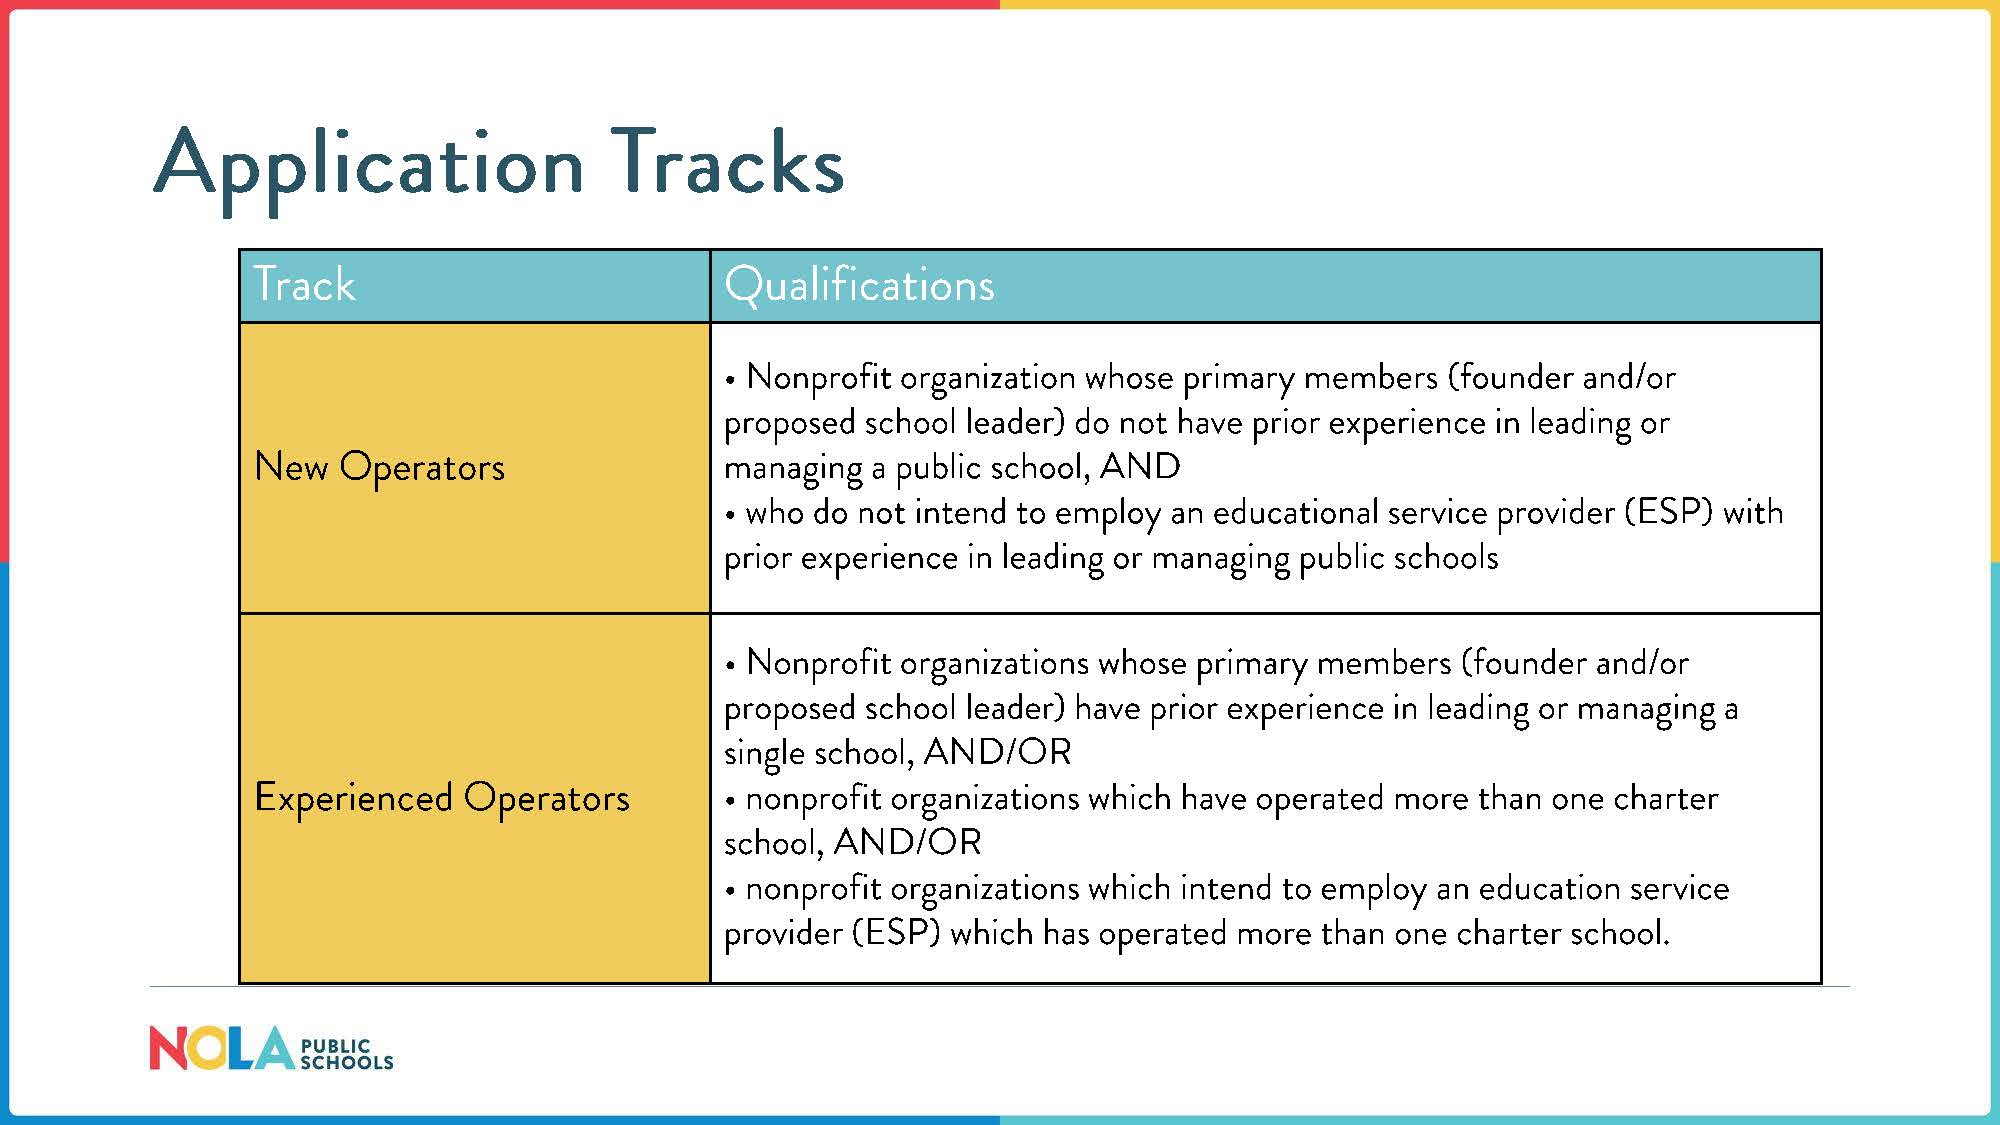 Application Tracks: Track & Qualifications for New Operators and Experienced Operators